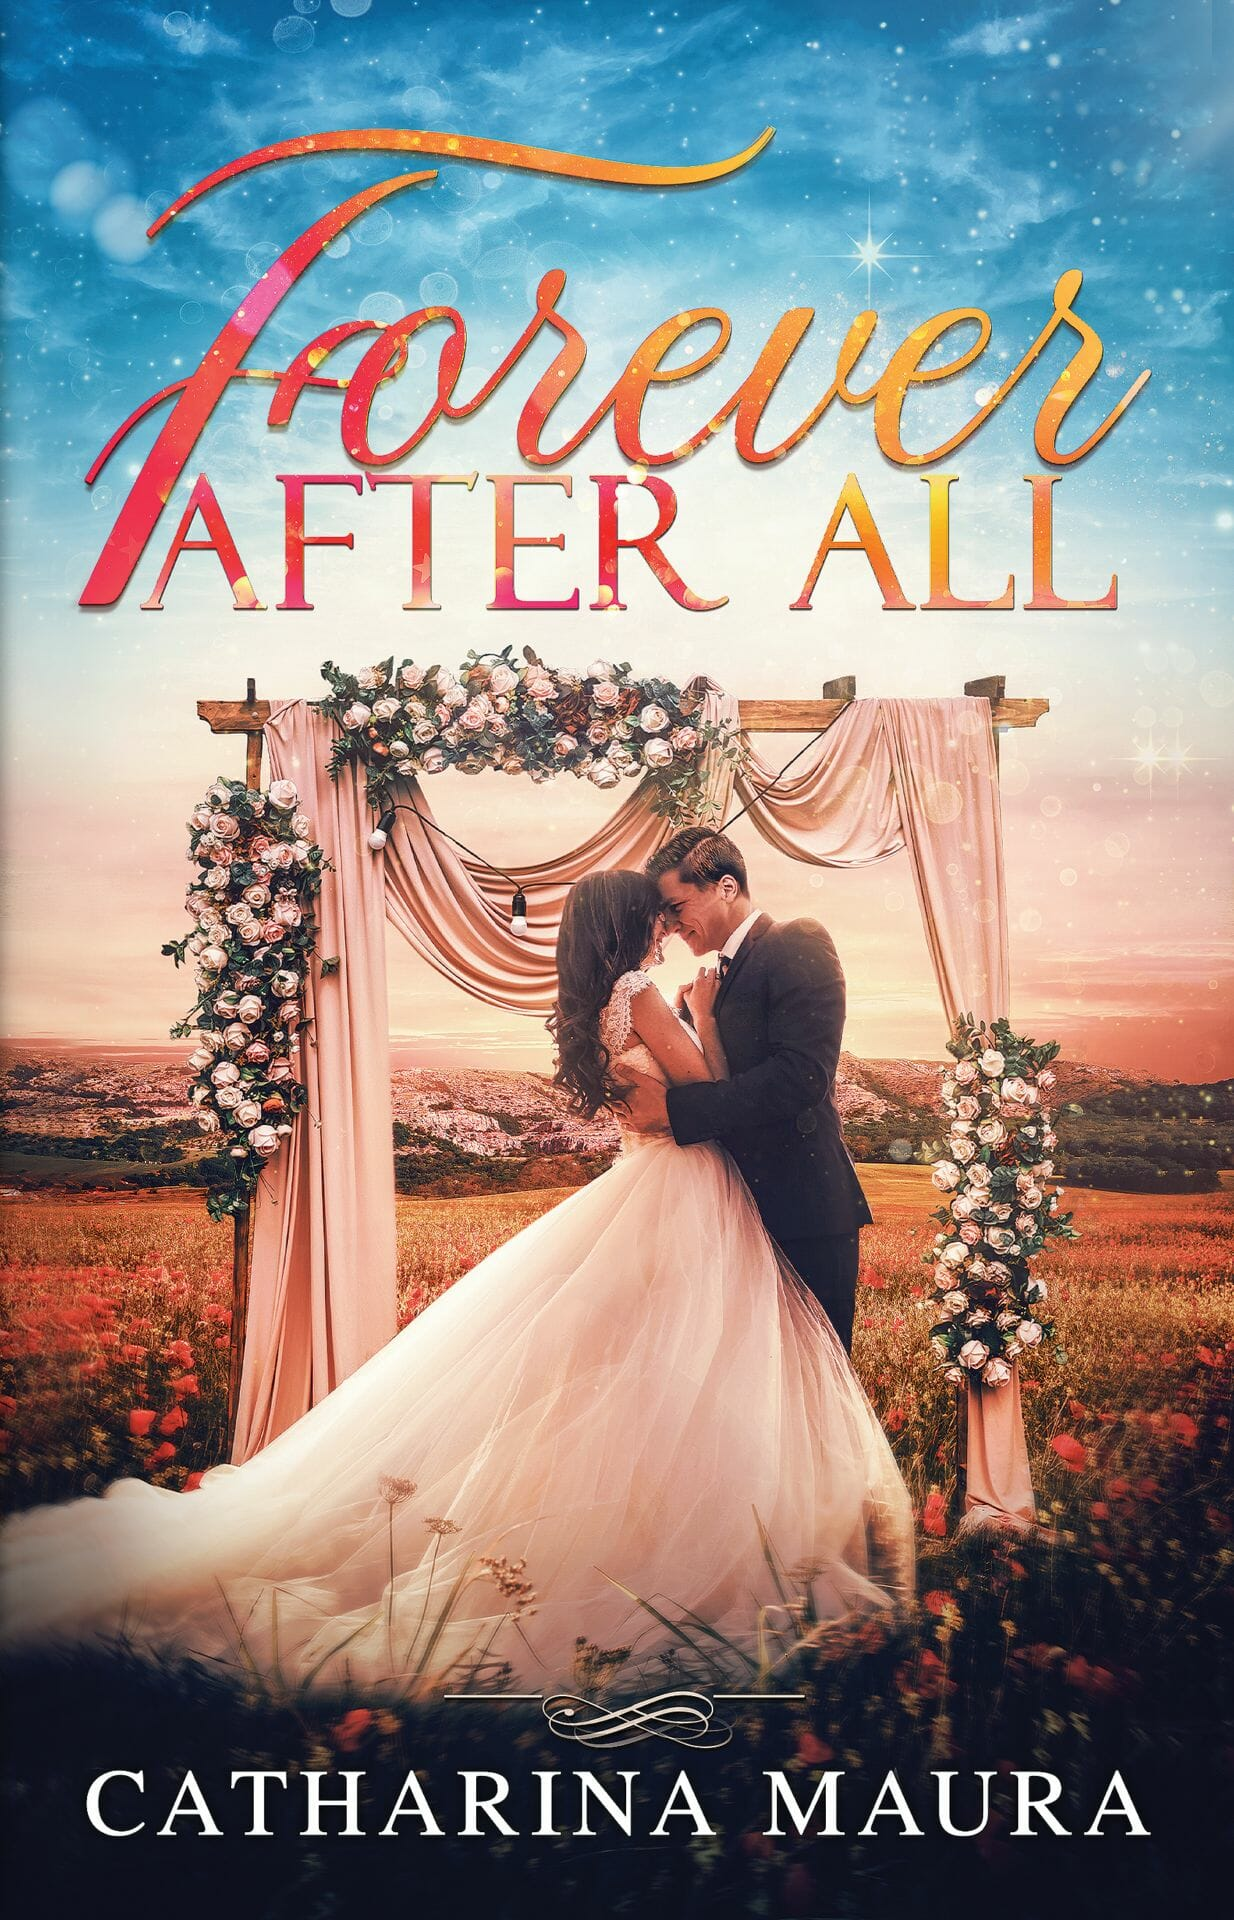 Forever After All by Catharina Maura